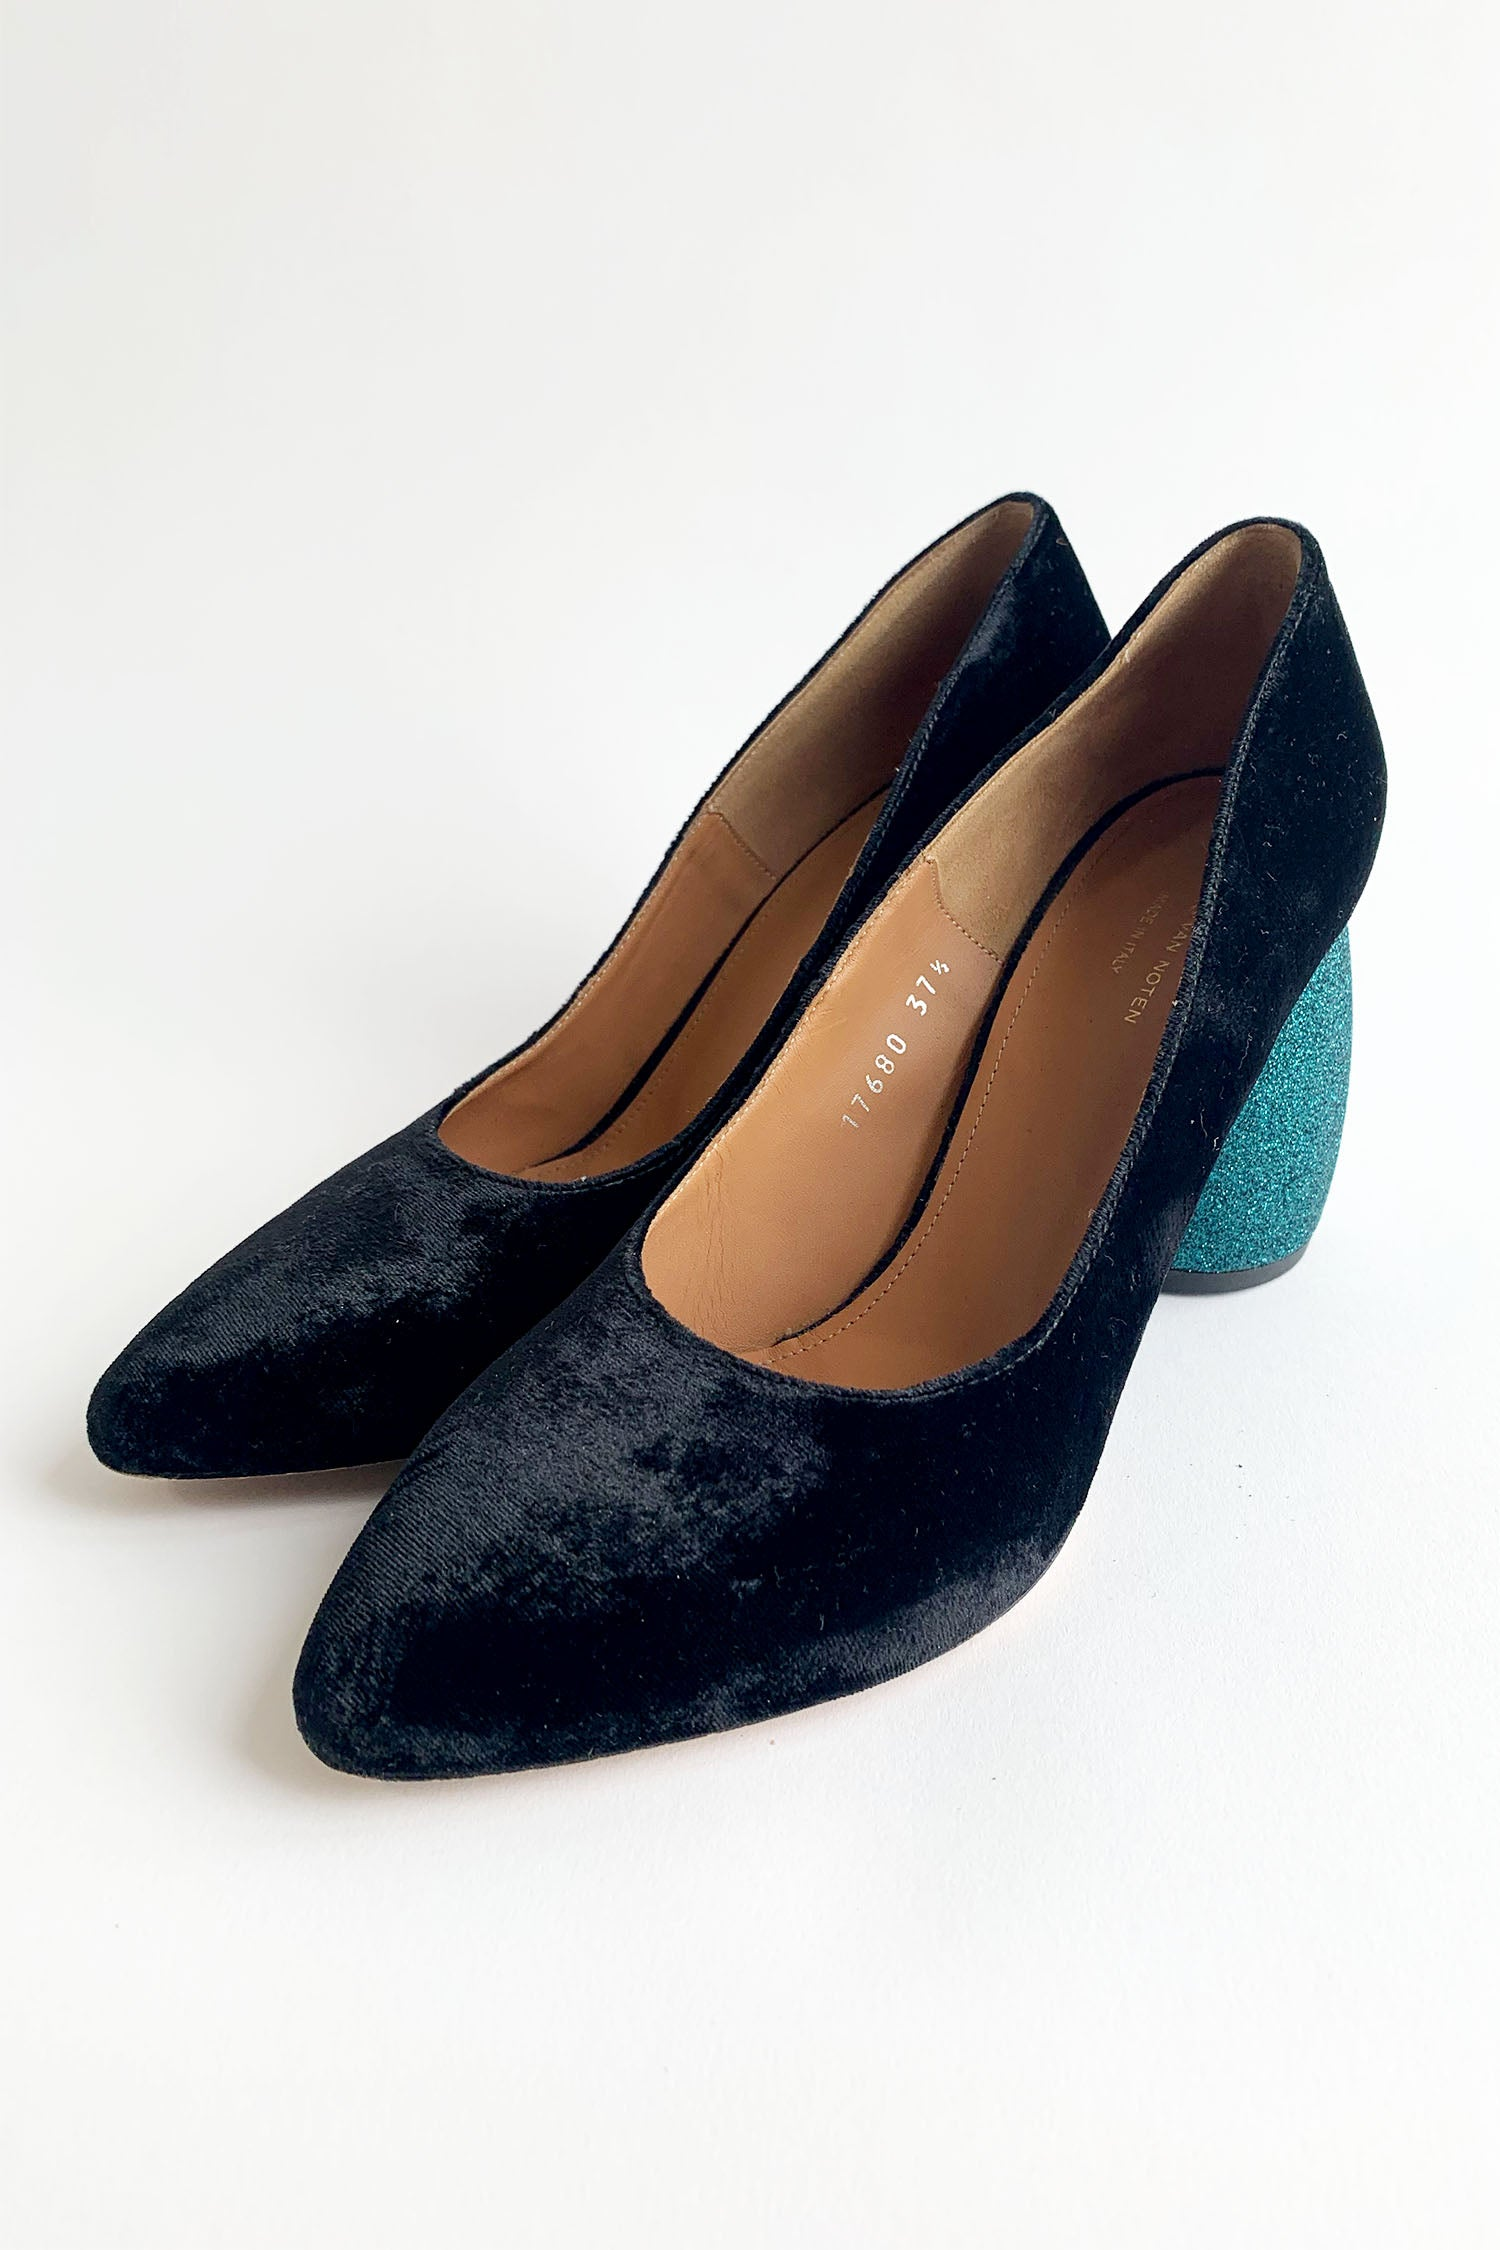 Dries Van Noten Velvet Semi Pointed-Toe Pumps Sz 37.5